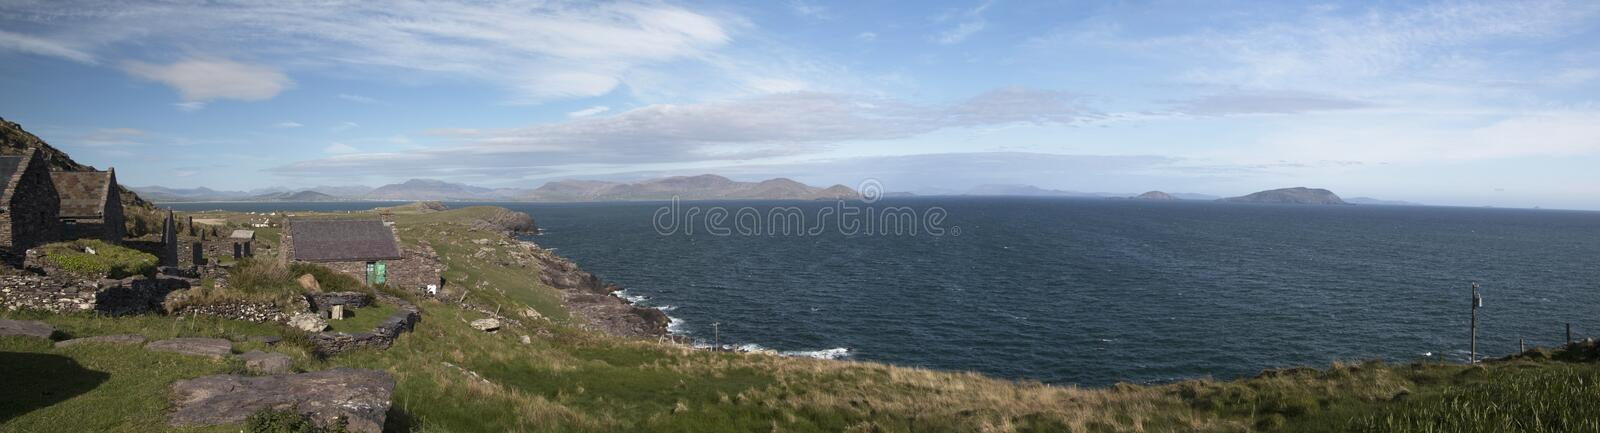 Panoramic view from Cill Rialaig artists colony stock images